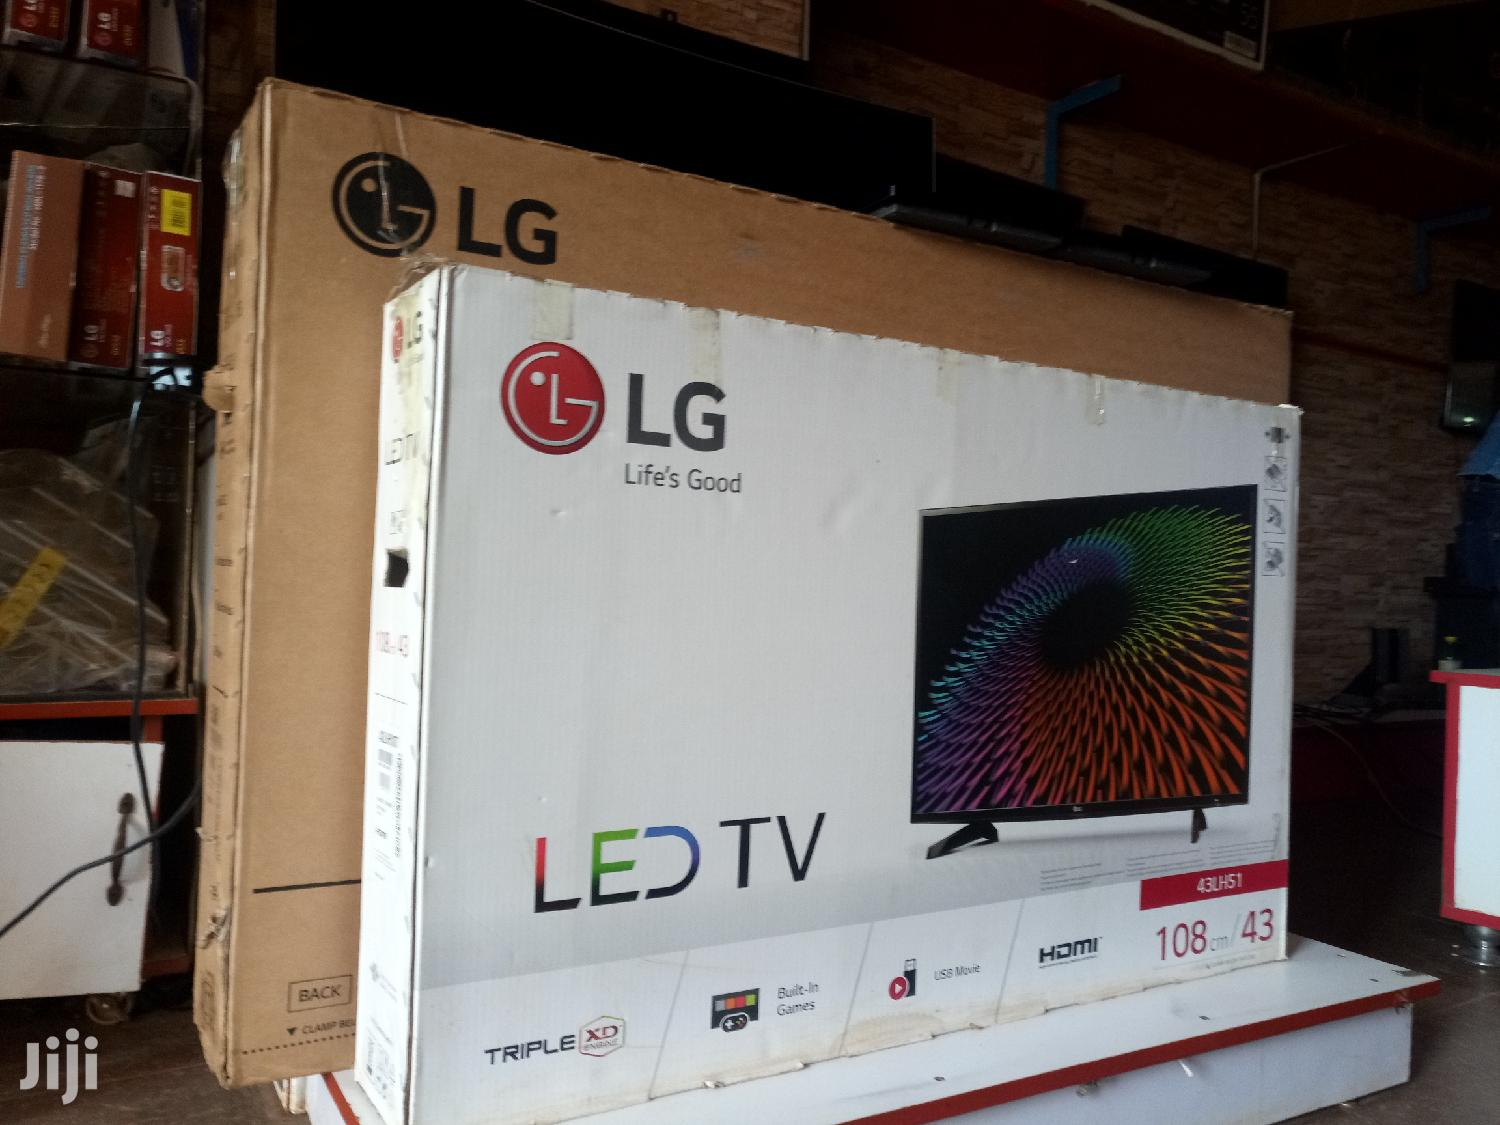 Archive: LG LED Digital Satellite Webos Flat Screen TV 43 Inches